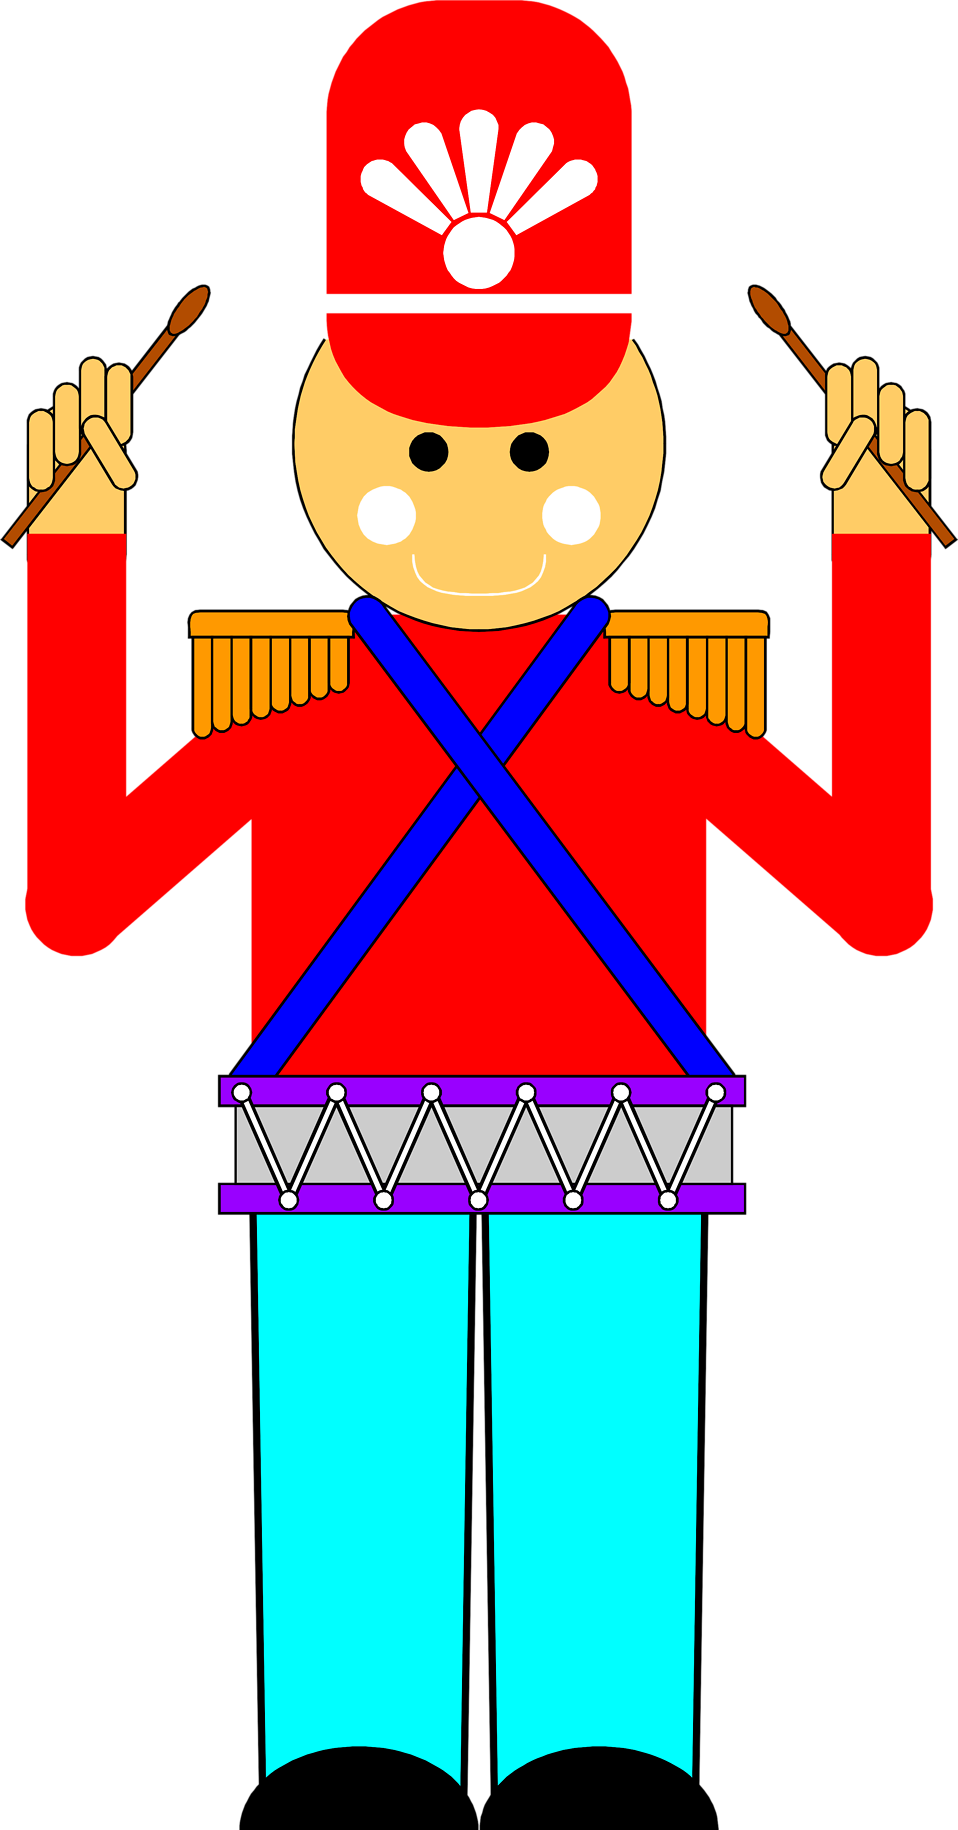 Drums clipart cartoon. Toy soldier free stock